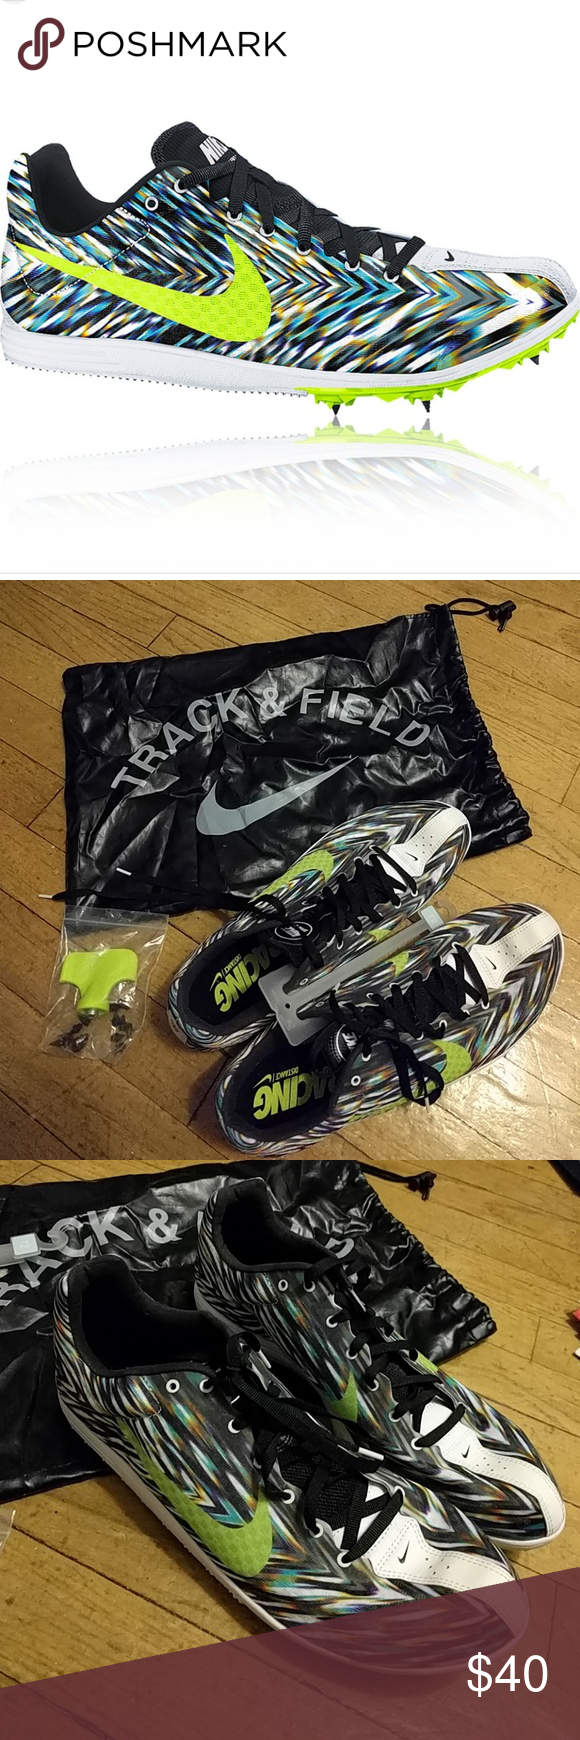 """Nwob Nike Rival D Track Racing Distance Shoes? This is NWOB. NEVER BEEN WORN.  Includes1/4"""" pyramid spikes (12 of them), dust bag, and a wrench key Nike Shoes Athletic Shoes"""